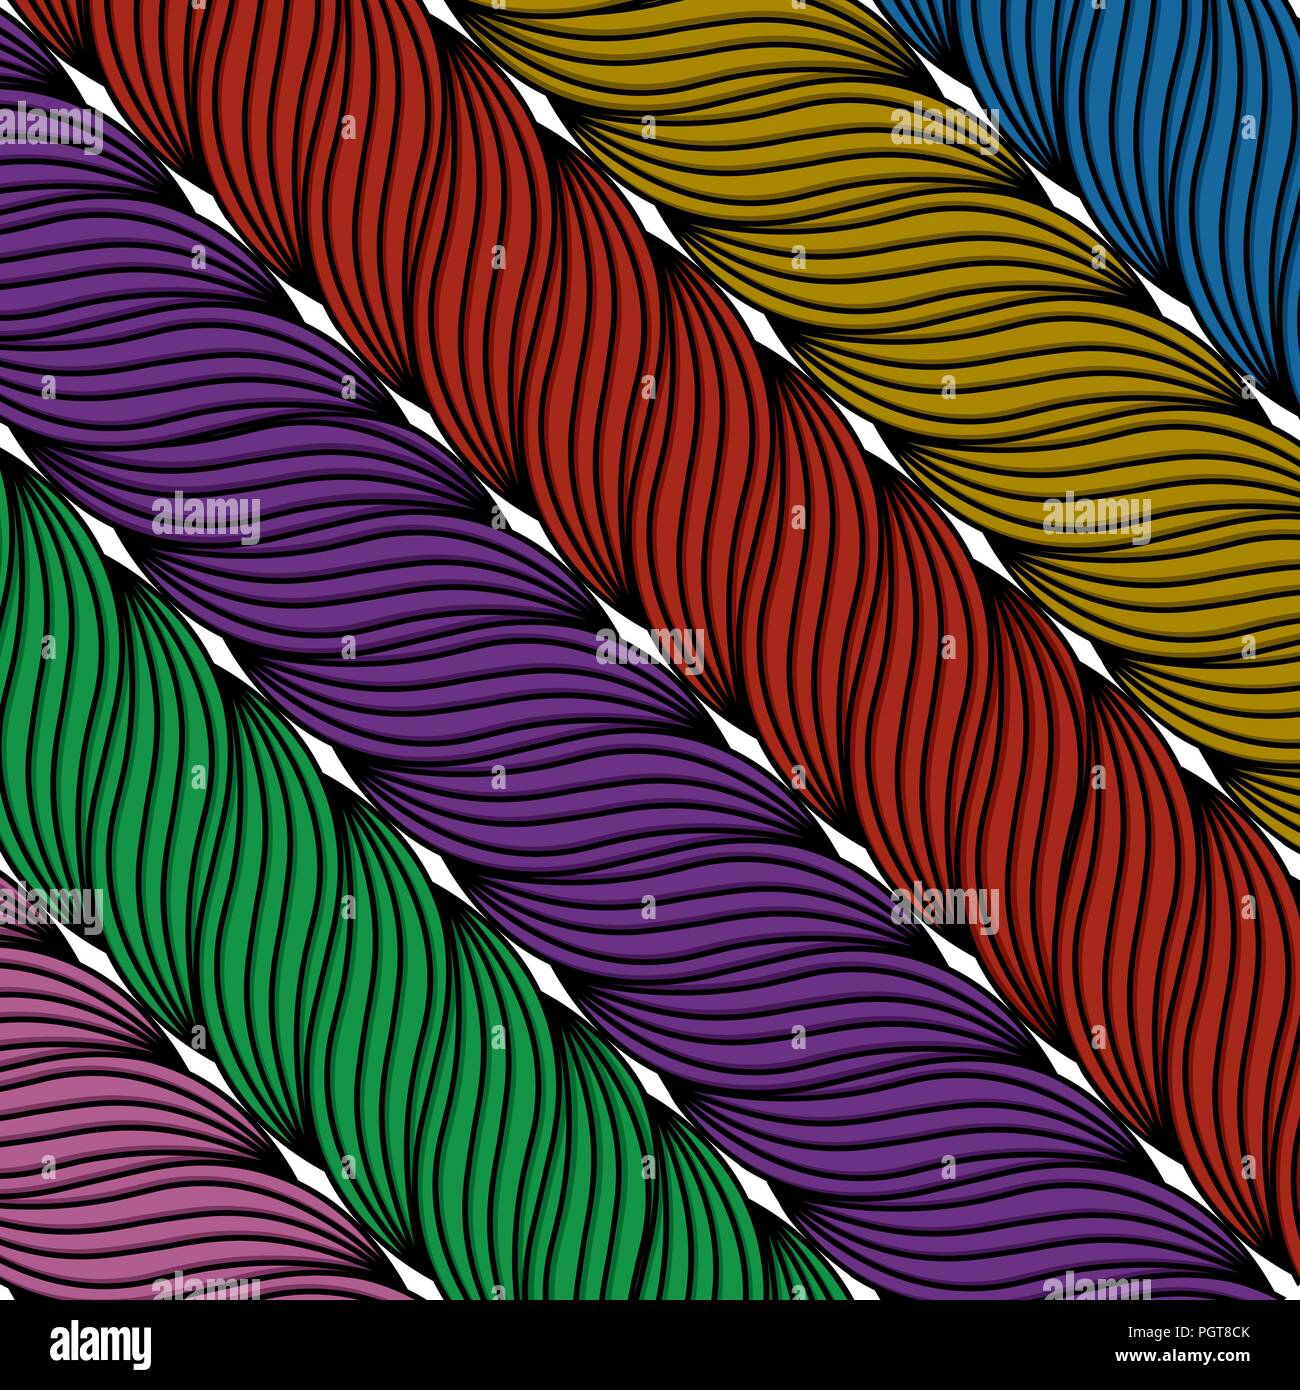 Wool textile background in colors - Stock Vector